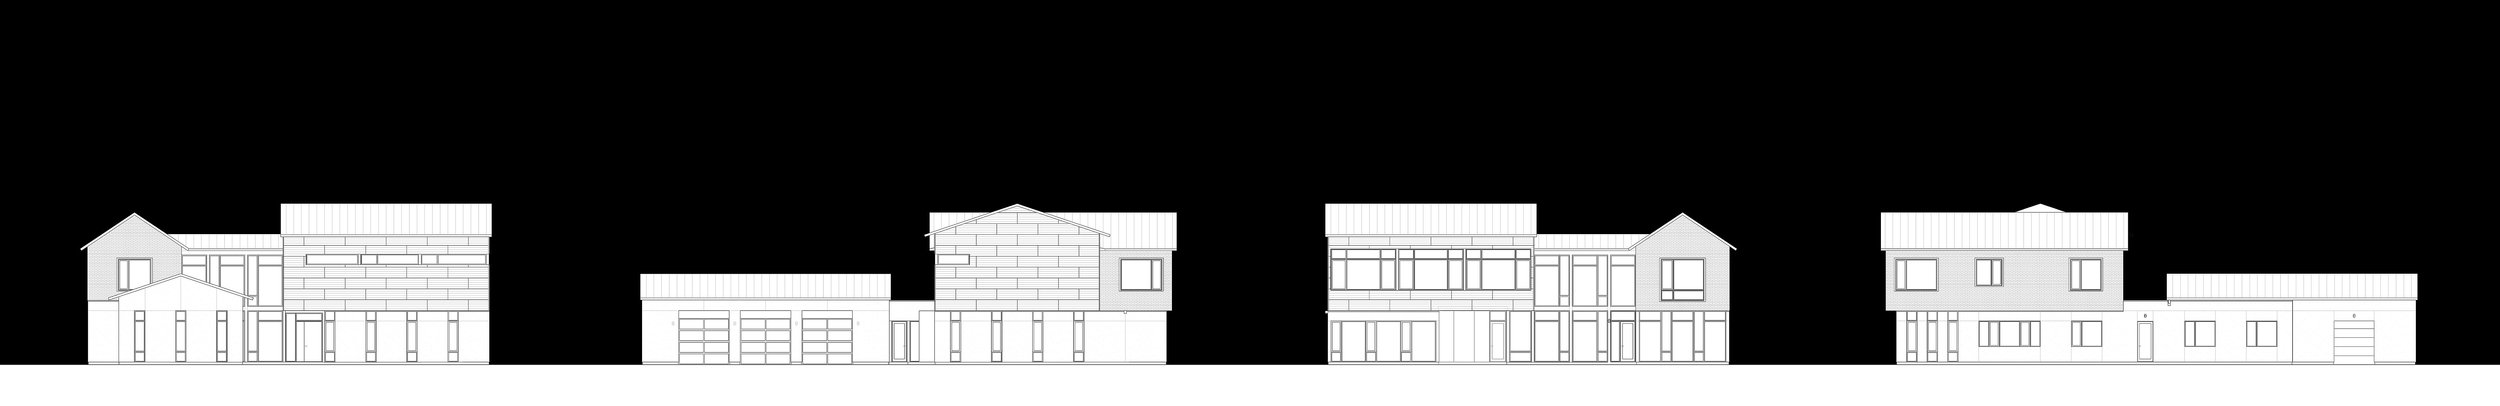 ALTUS-Lake-Waconia-House-elevations.jpg